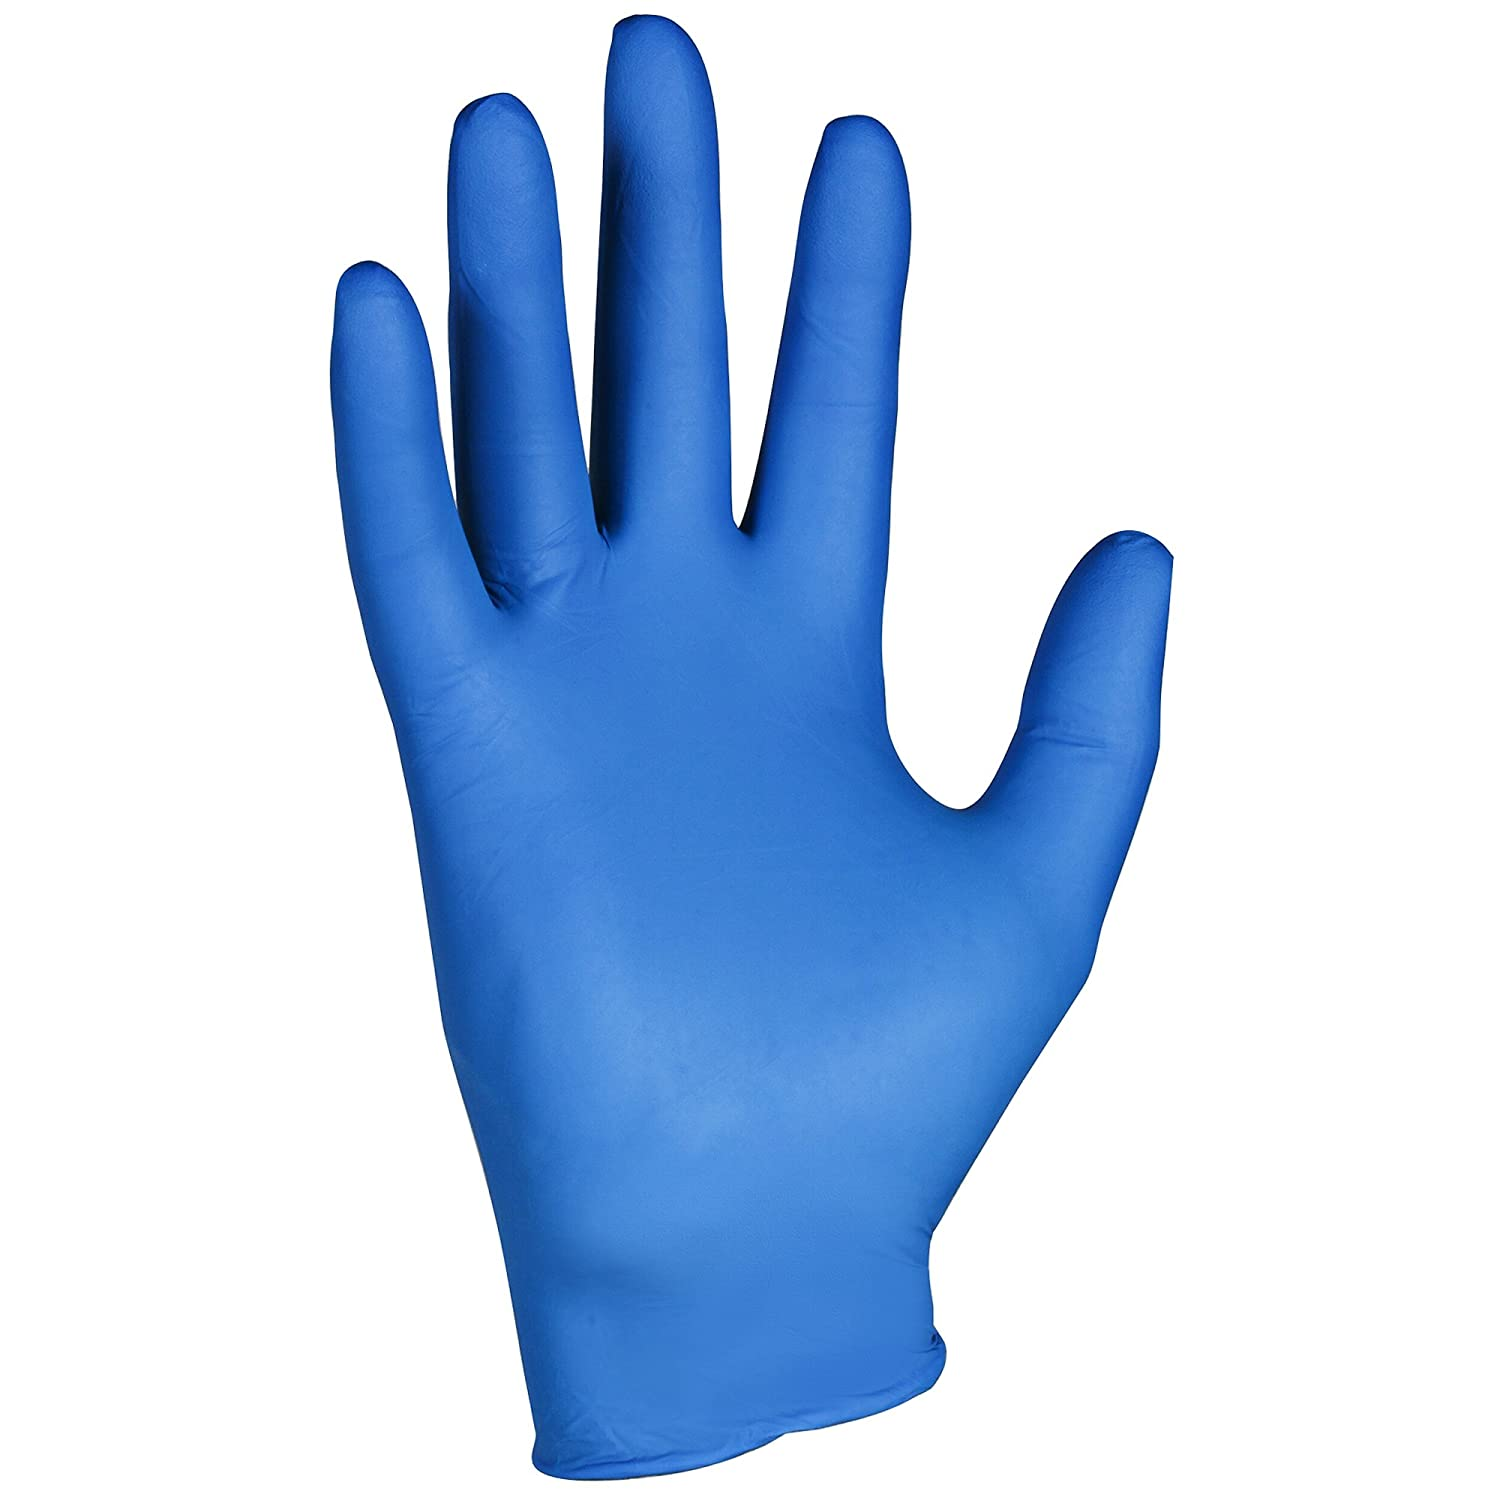 Kimberly-Clark KleenGuard G10 Nitrile Arctic Glove, Powder Free, 9-1/2 Length, Large, Blue (Case of 2000) by Kimberly-Clark Professional B004JJOX4W